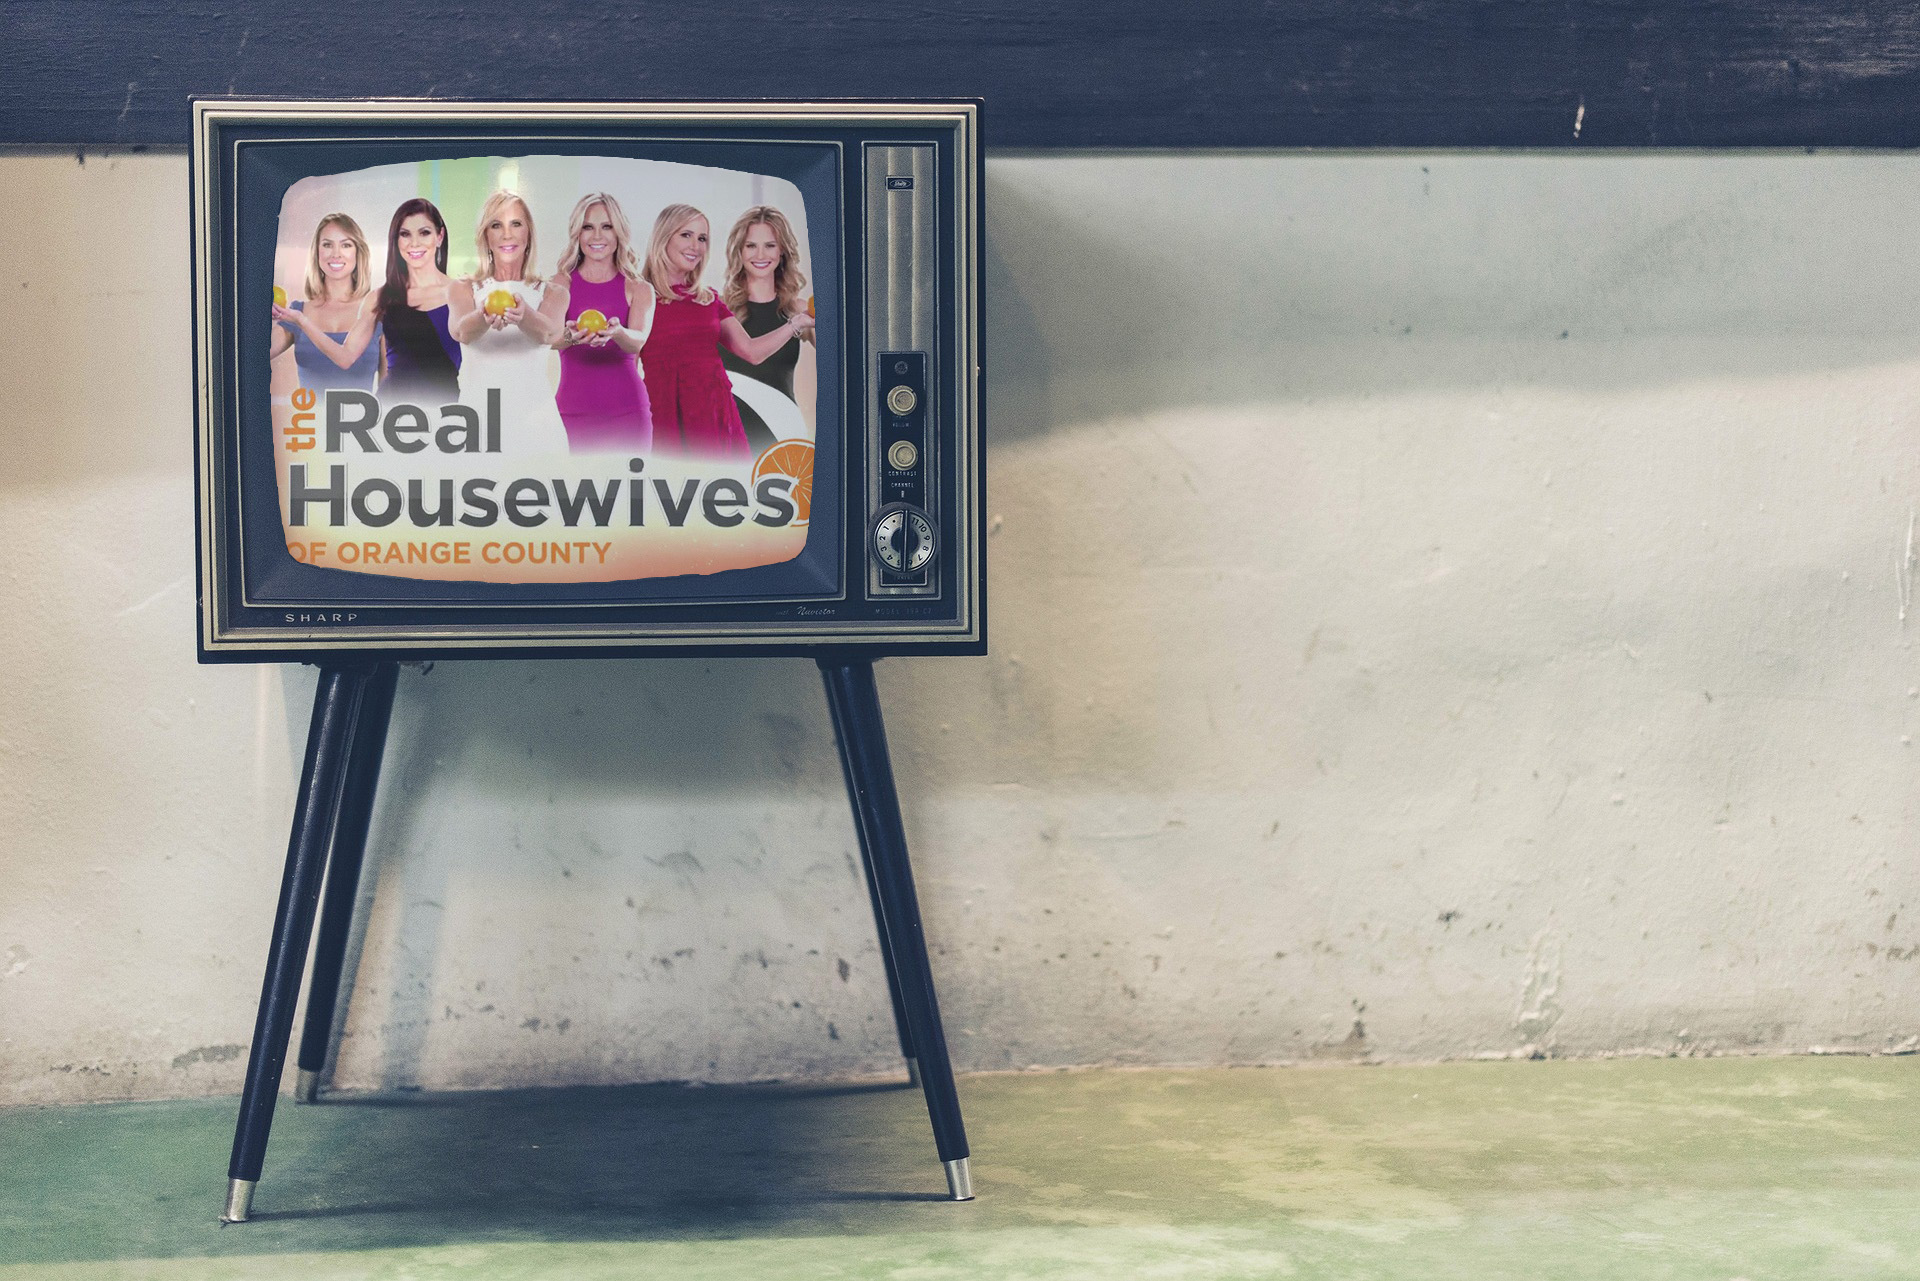 The Real Housewives facts